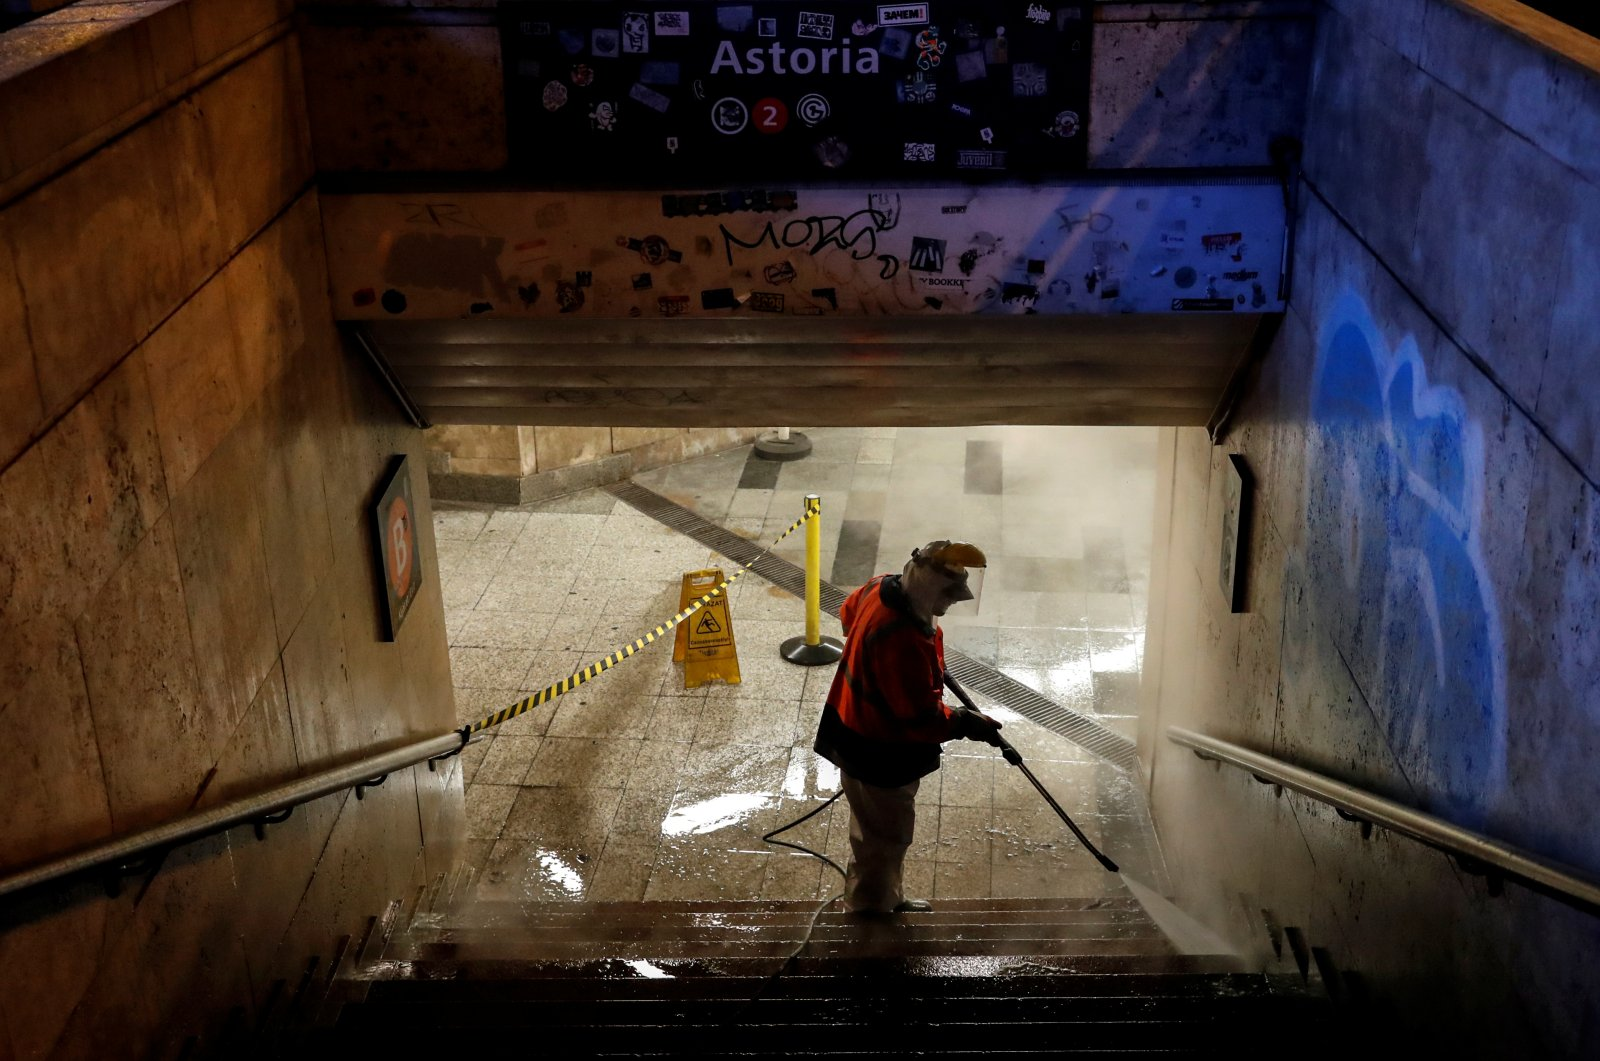 A worker cleans a flight of stairs of an underpass, amid the COVID-19 outbreak, in downtown Budapest, Hungary, Wednesday, March 25, 2020. (Reuters Photo)